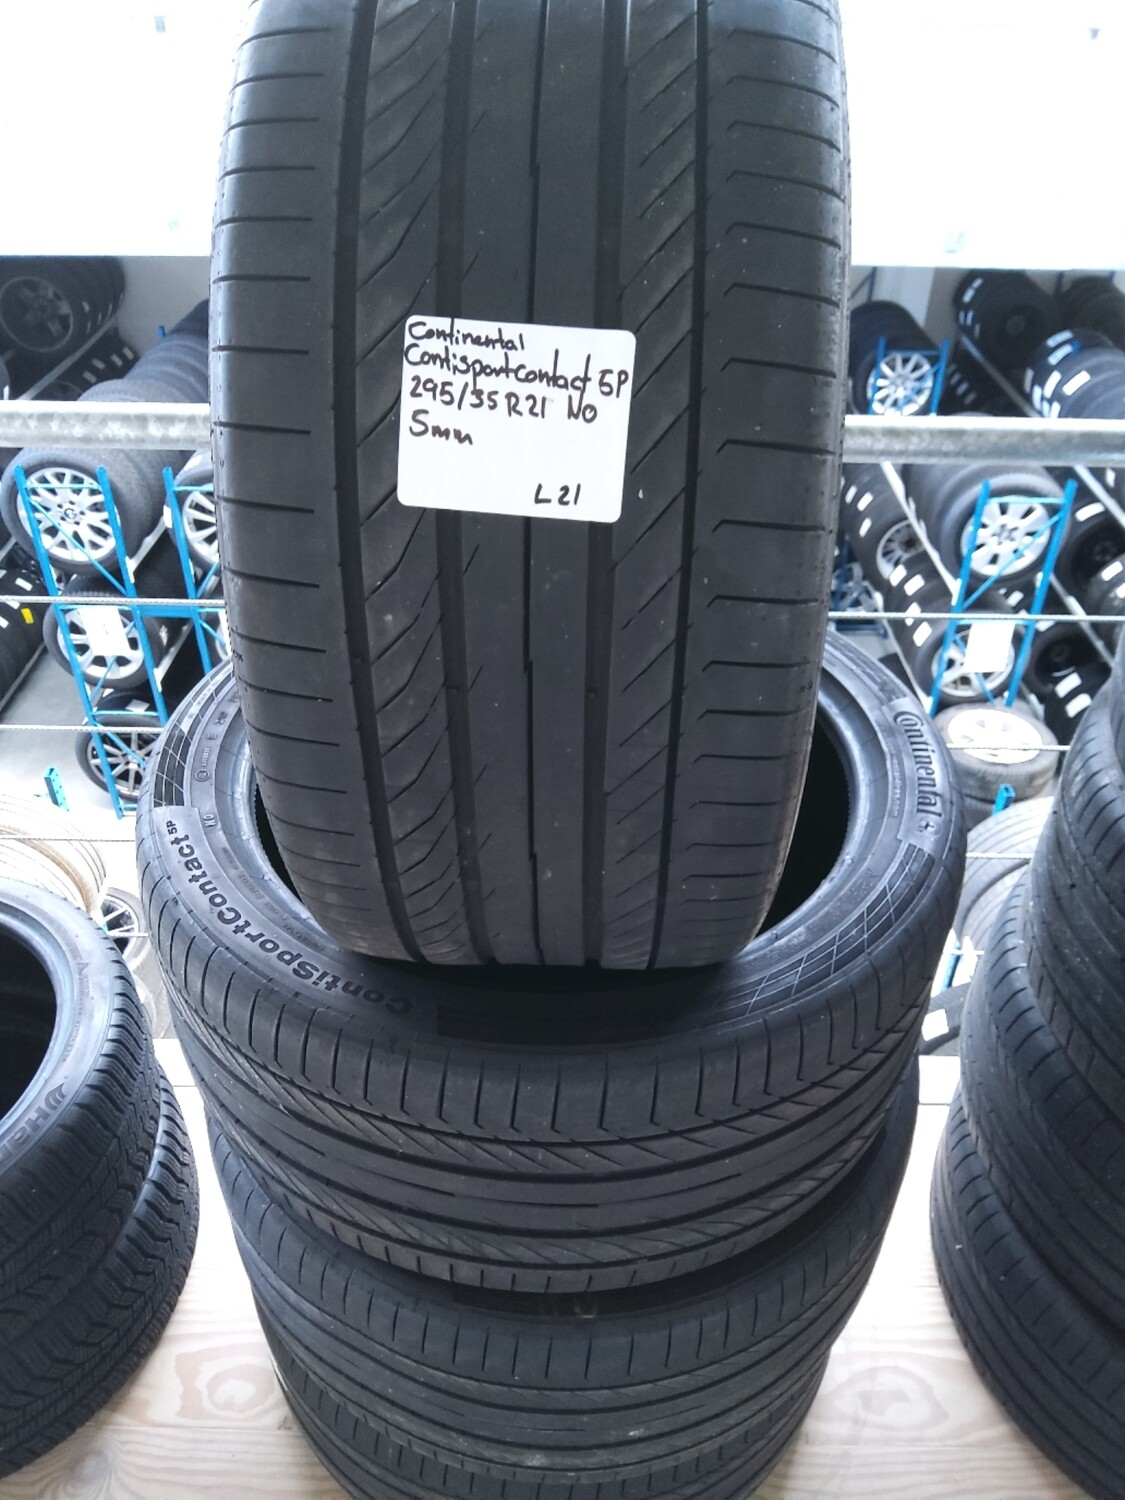 Continental ContiSportContact 5P 295/35 R21 NO 5mm.mønster